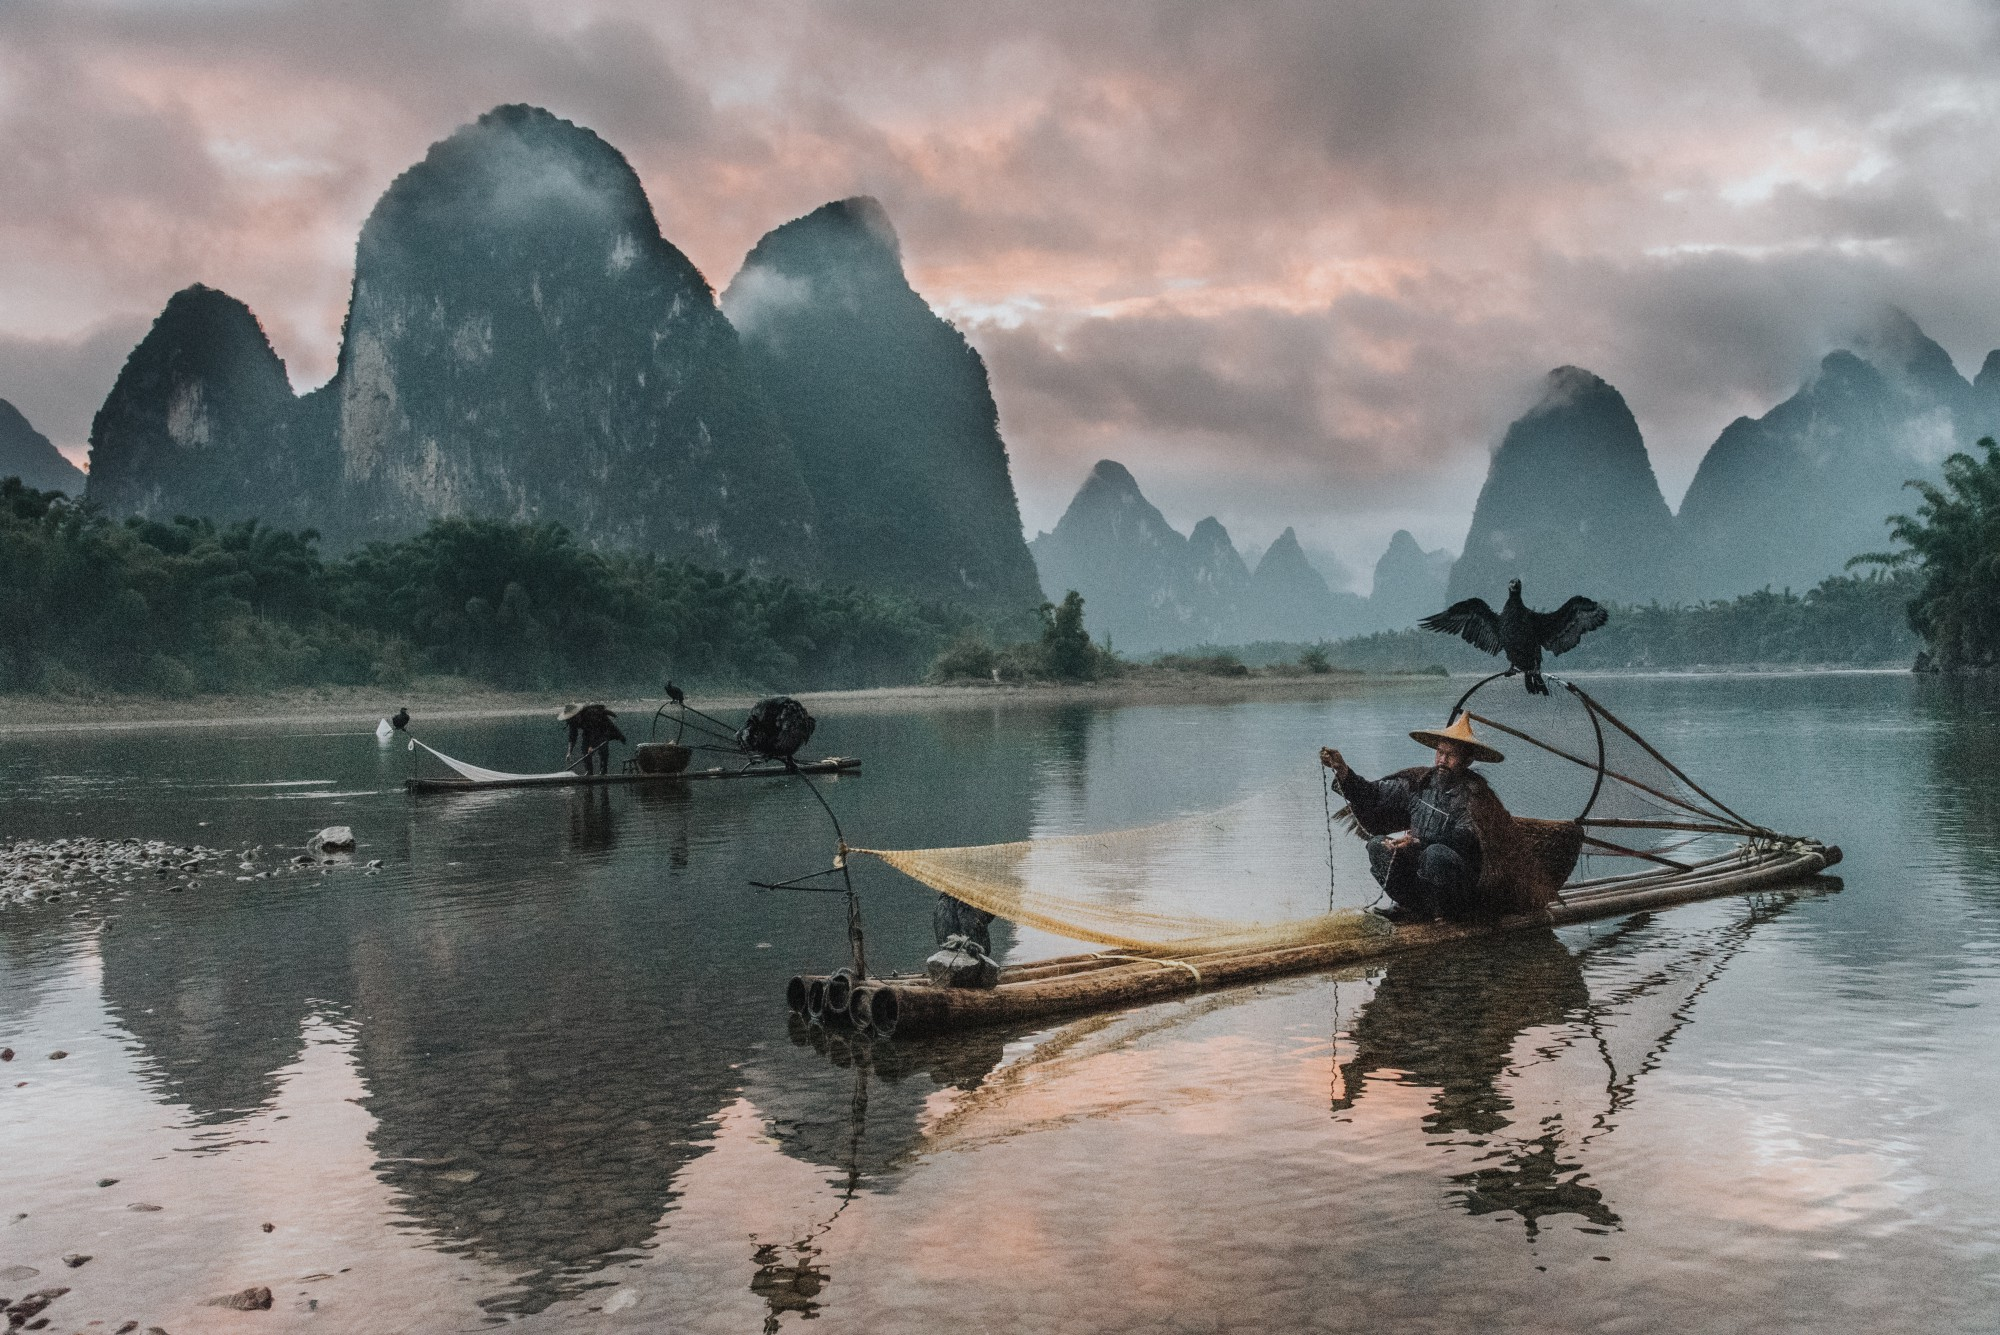 A Chinese fisherman catching fish with his net in a lake beside beautiful mountains.